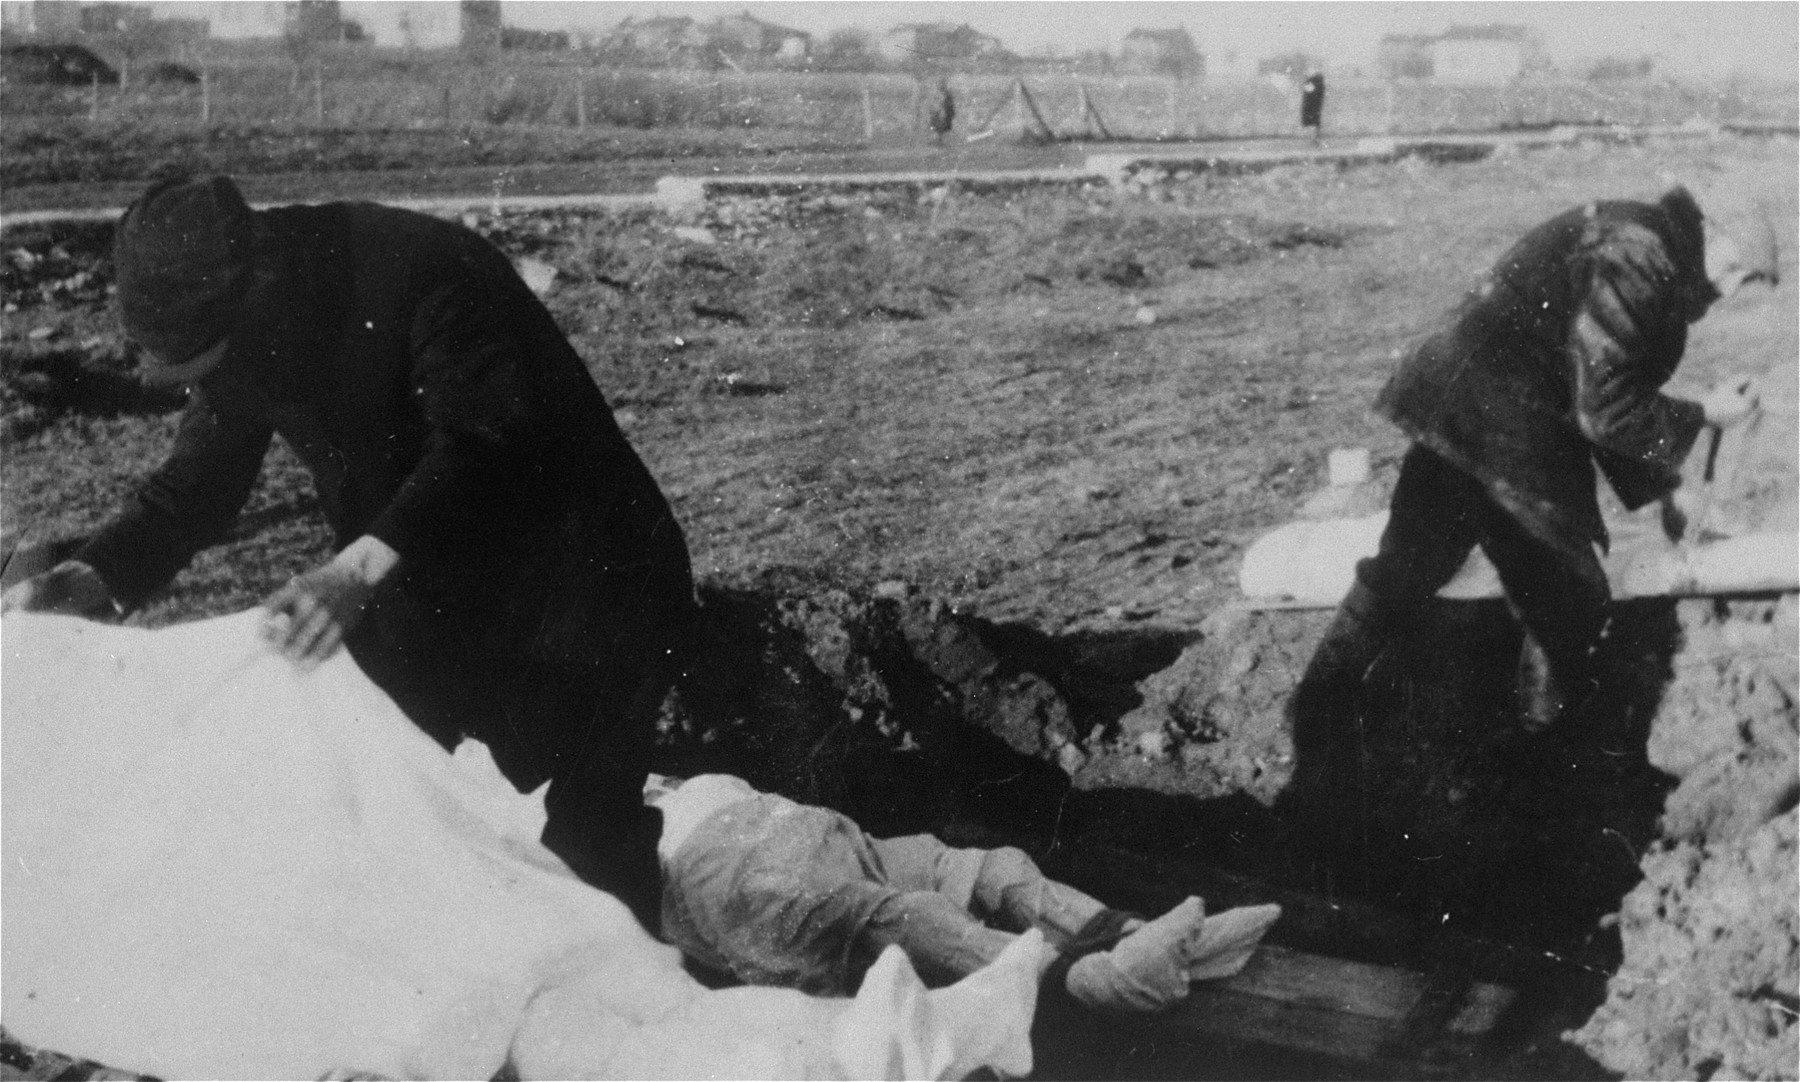 Two men prepare bodies for burial at the Jewish cemetery in Kutno.